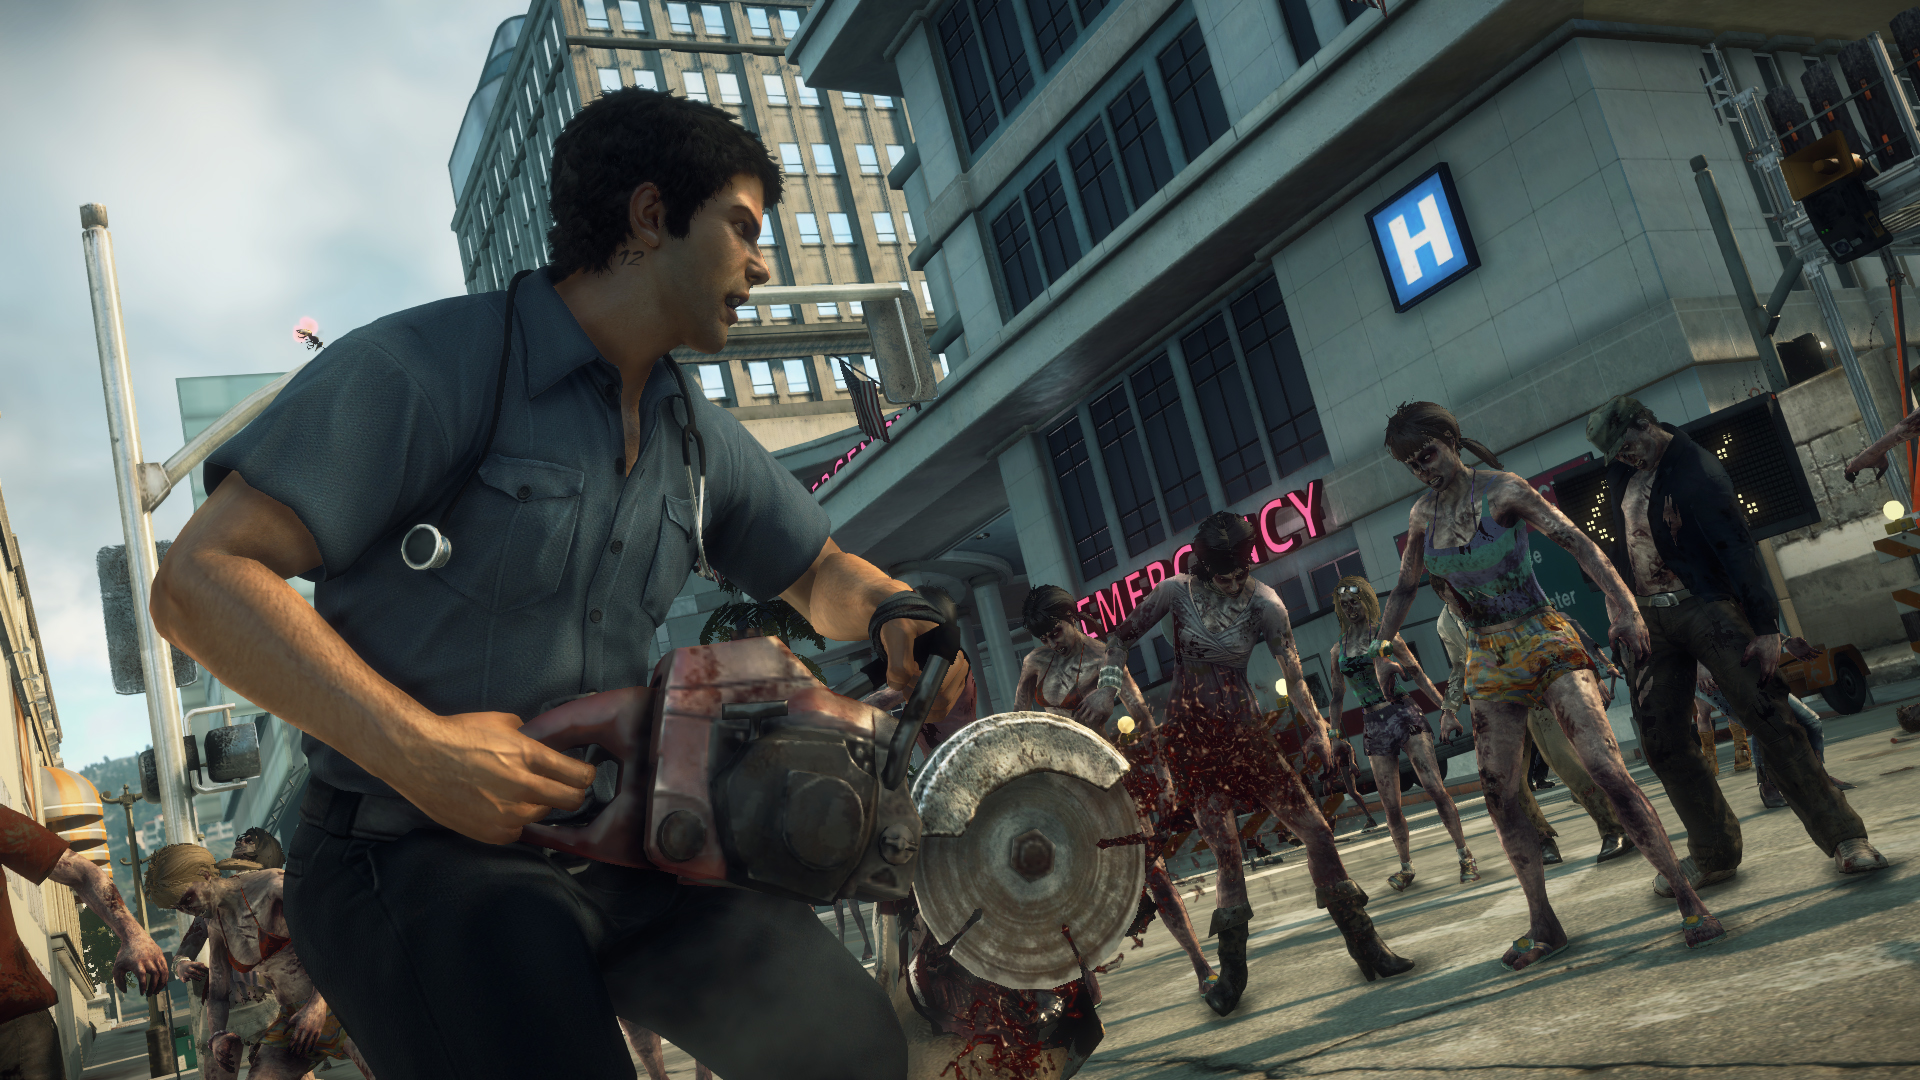 Dead rising 3 coming to pc in september blog kark jocke mod db dead rising 3 coming to pc in september malvernweather Images